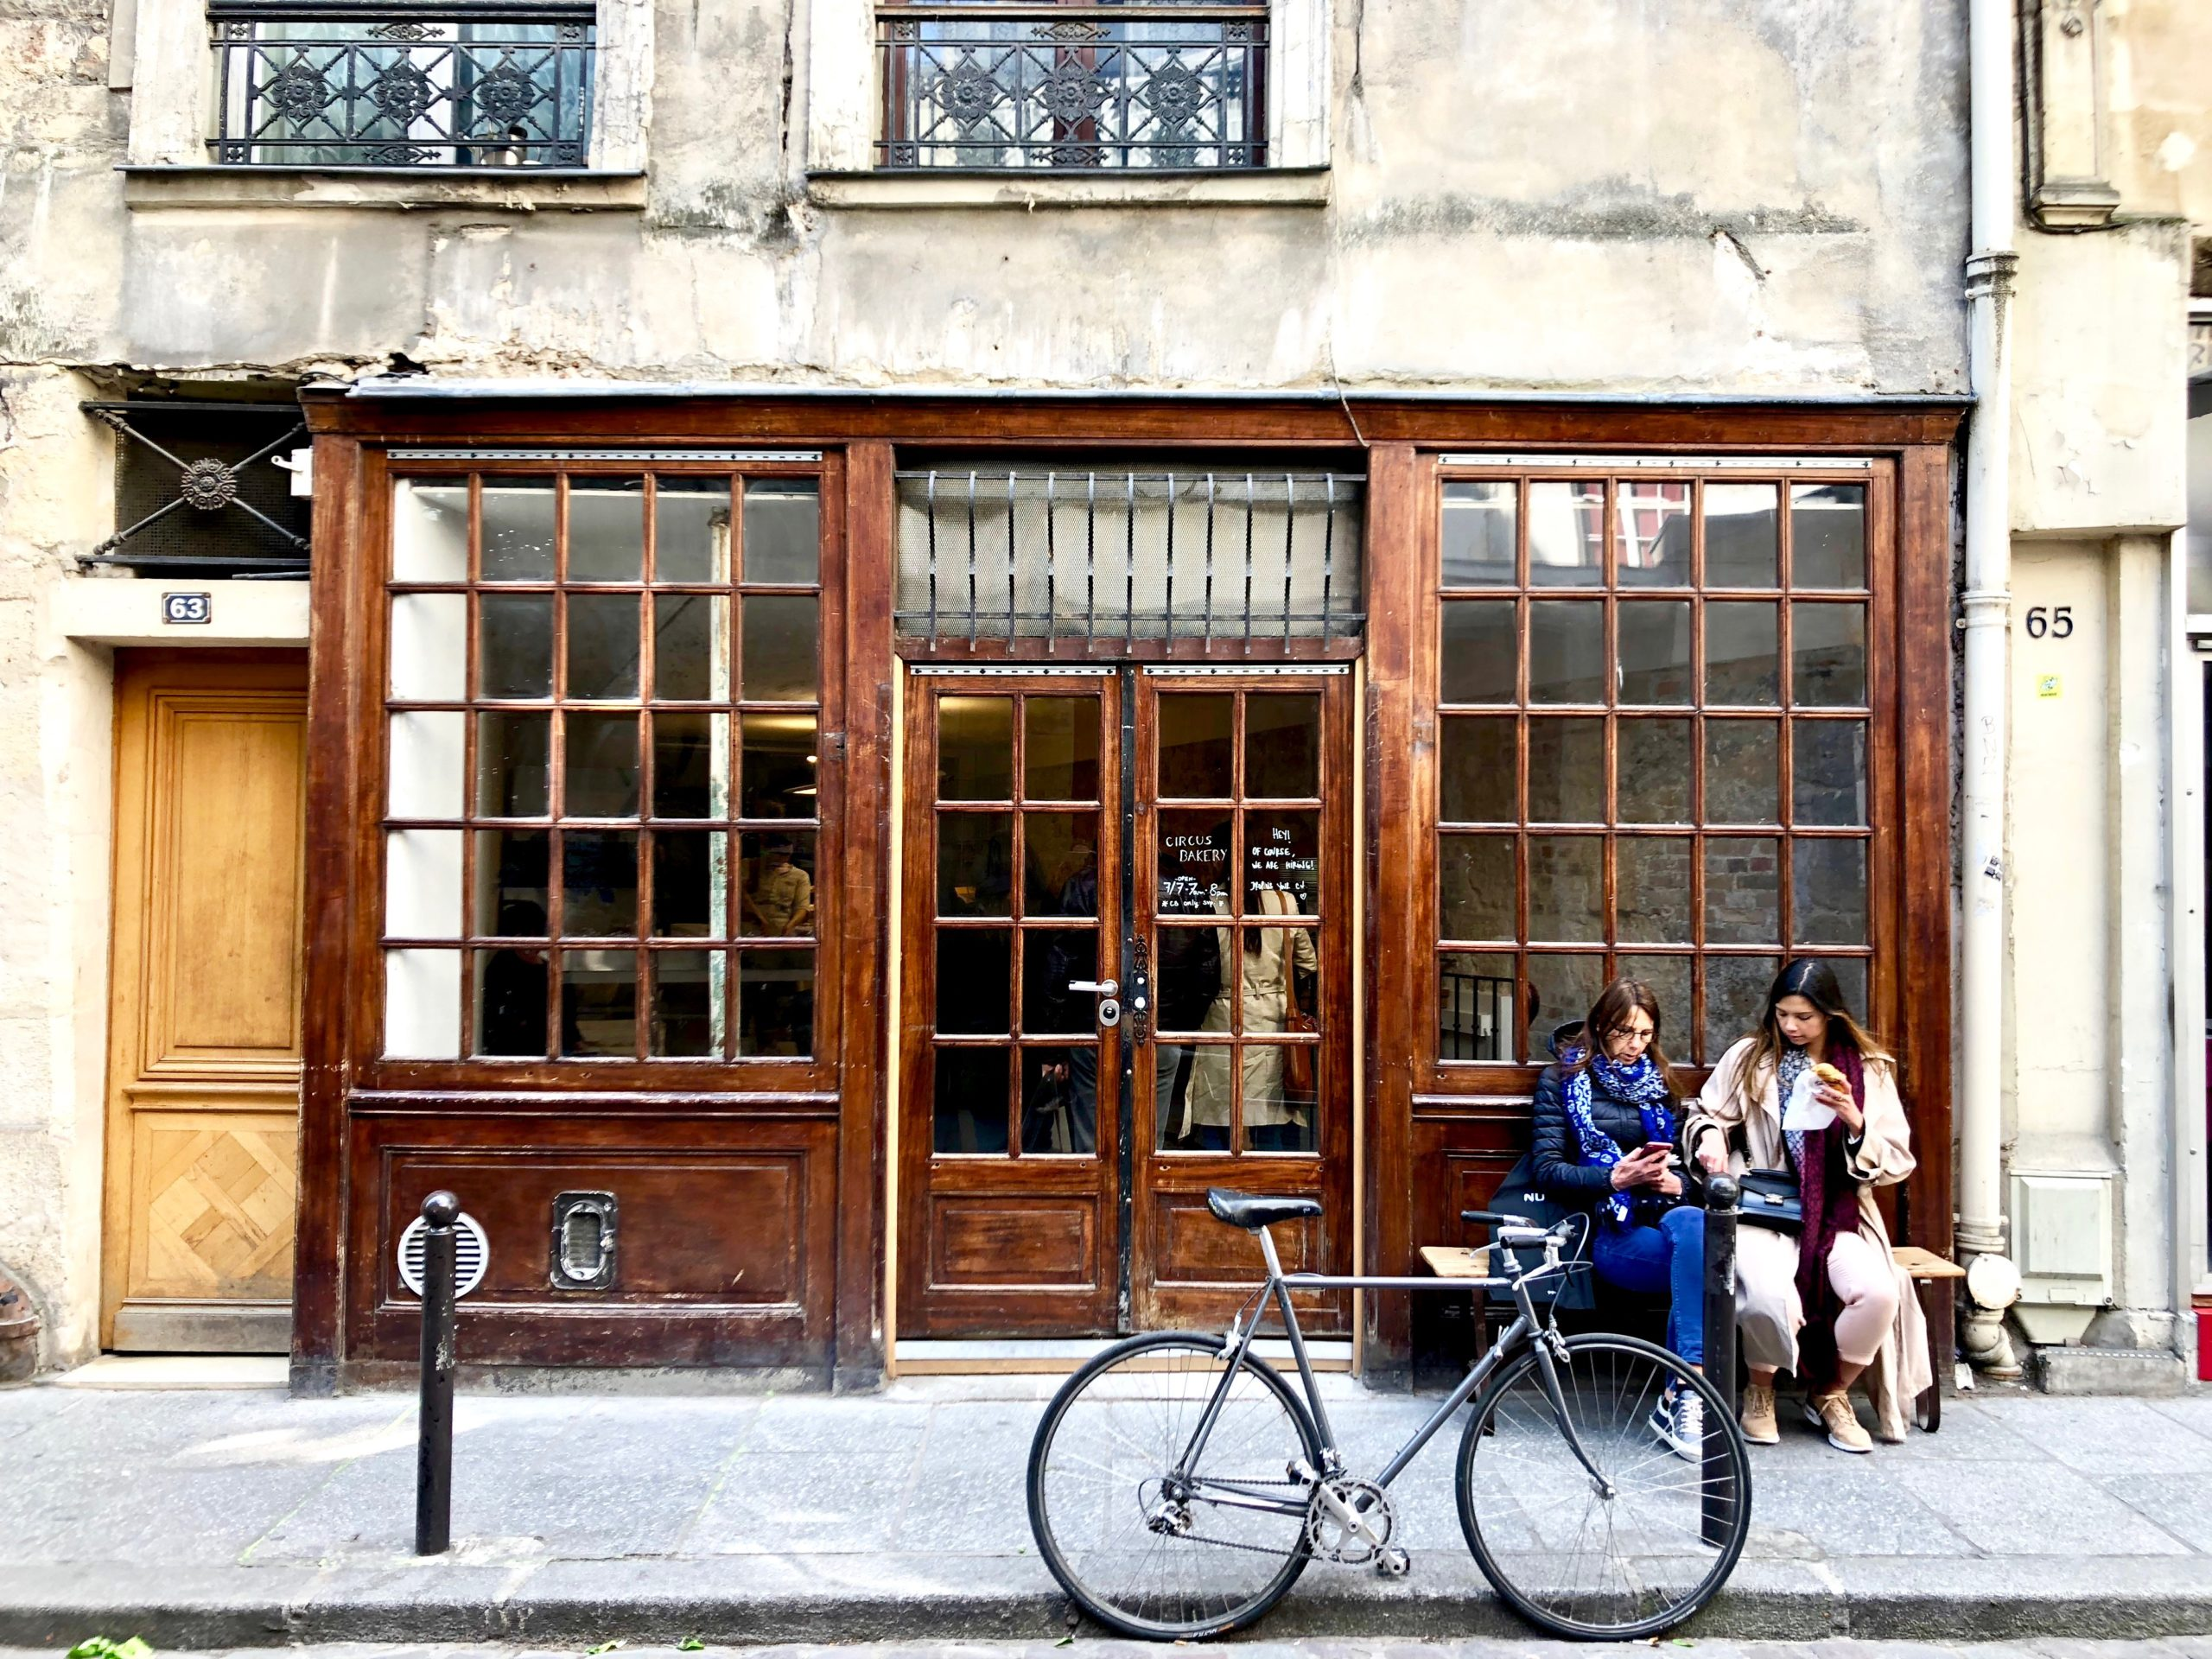 The old wooden exterior of Circus Bakery in Paris with two women sitting outside on a bench.